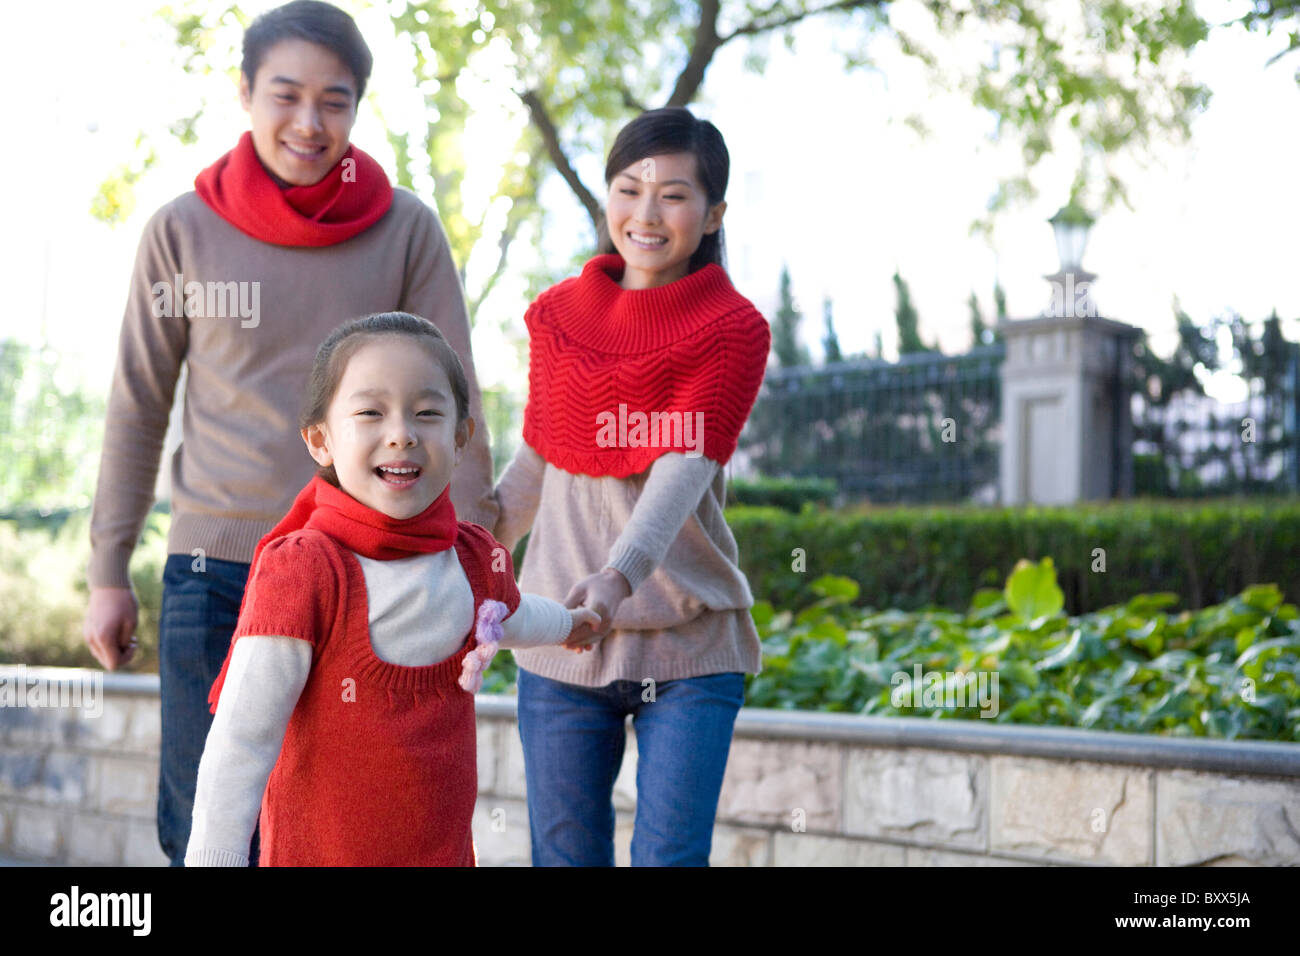 Young Family Enjoying a Park in Autumn - Stock Image